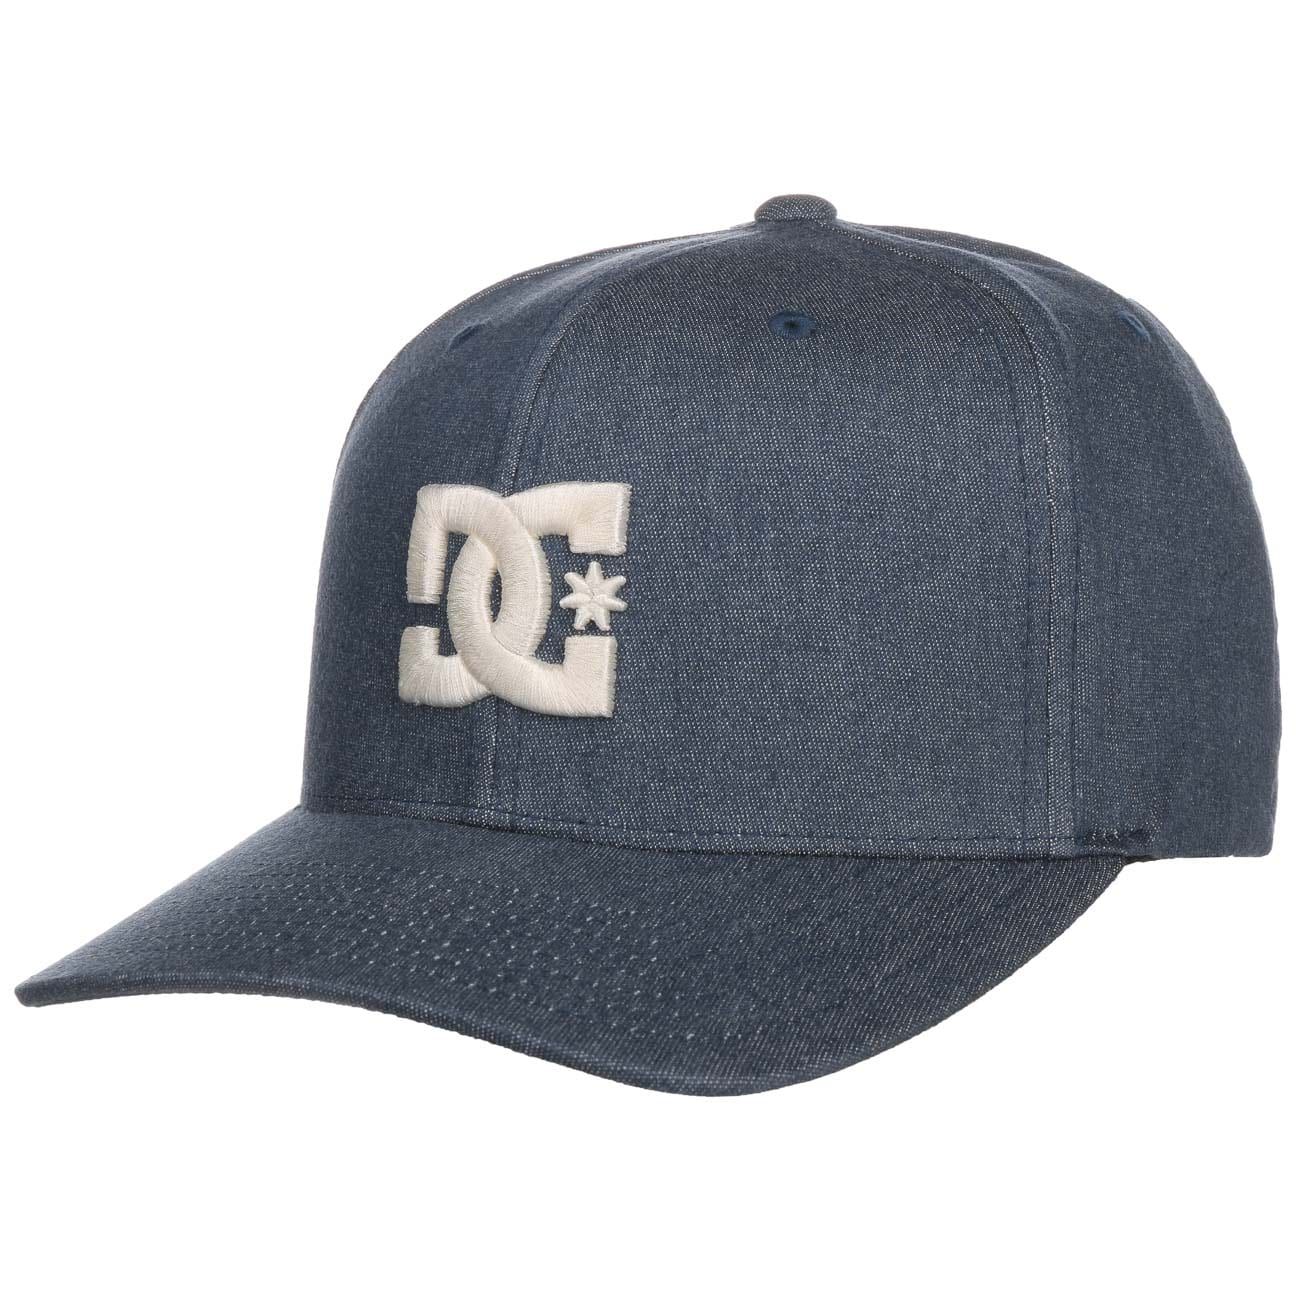 Gorra Capstar TX by DC Shoes Co